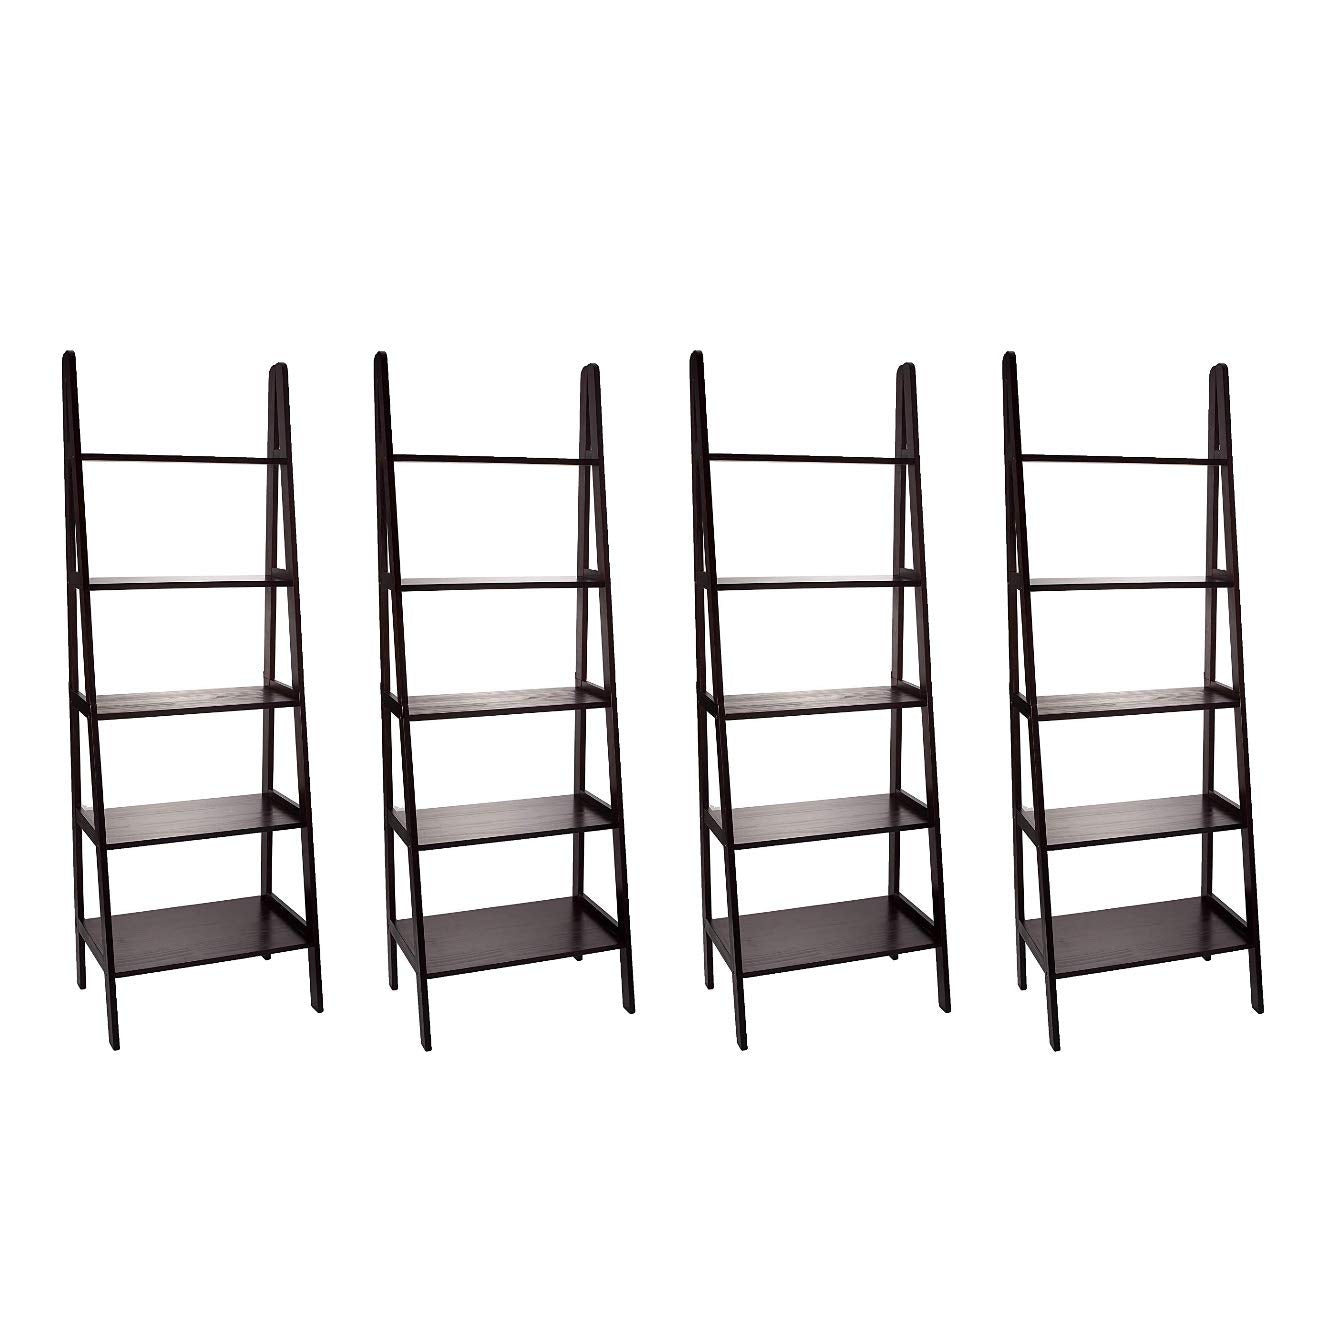 Casual Home 5-Shelf Ladder Bookcase, Espresso (Pack of 4)